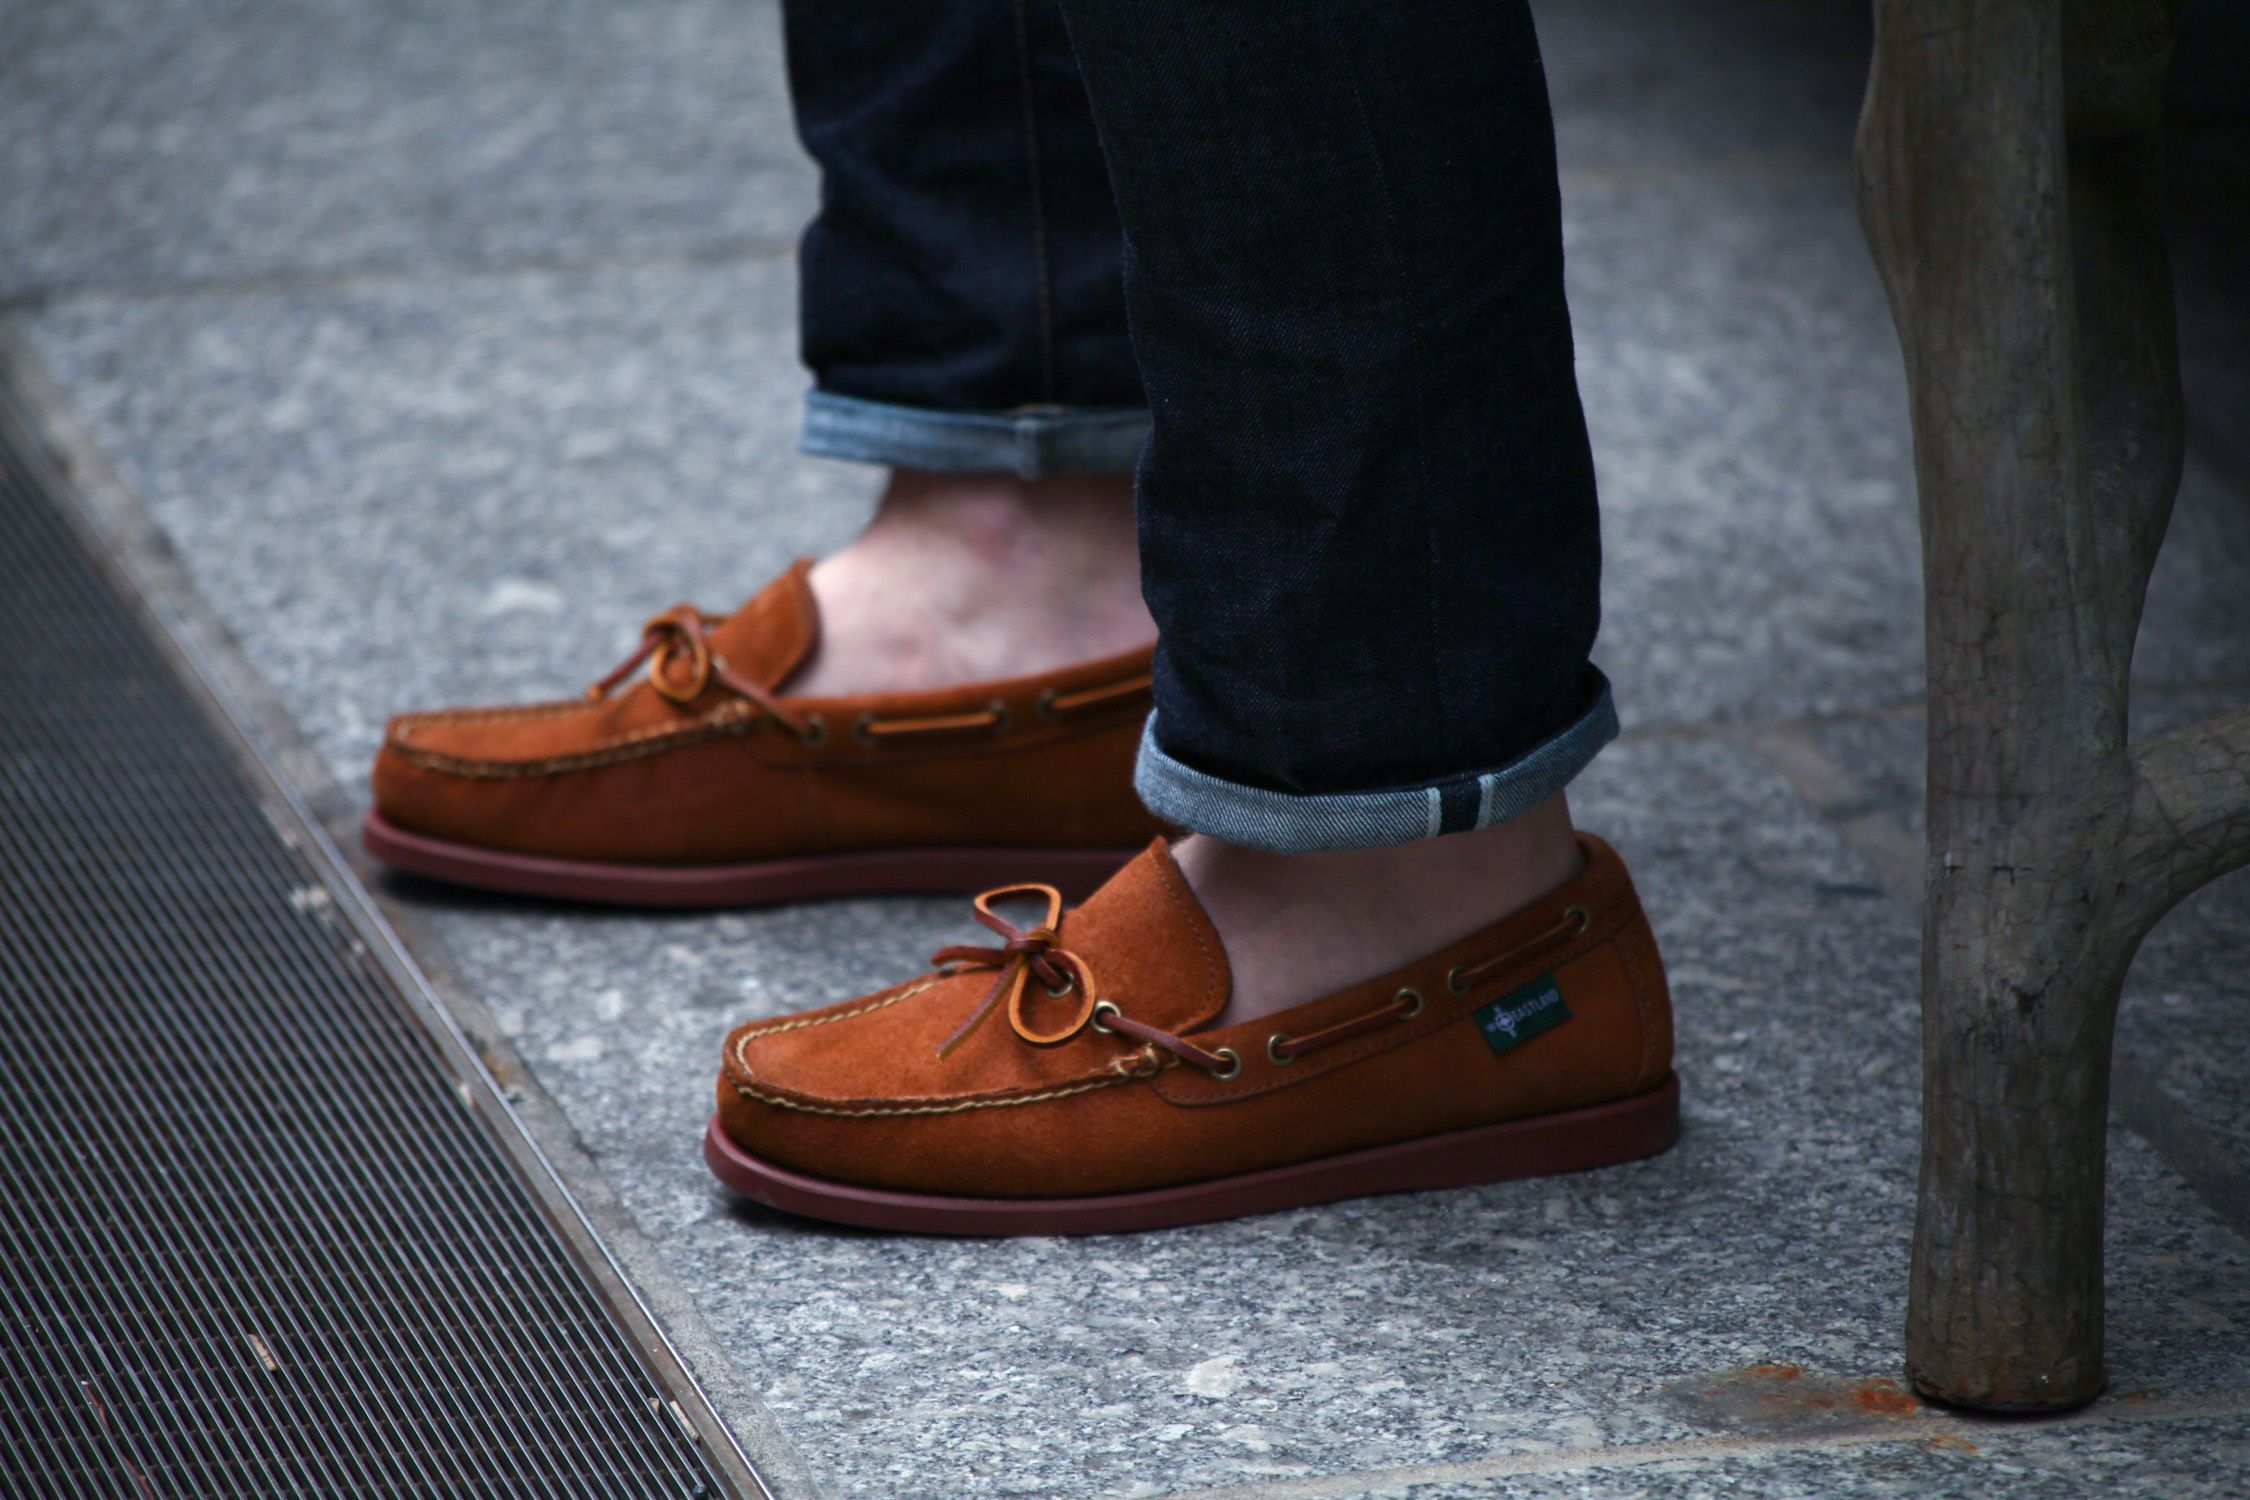 e9ea30ecae Eastland Yarmouth 1955 Boat Shoe  eastlandshoe  threadandsalt Paired up  with one of my favorite